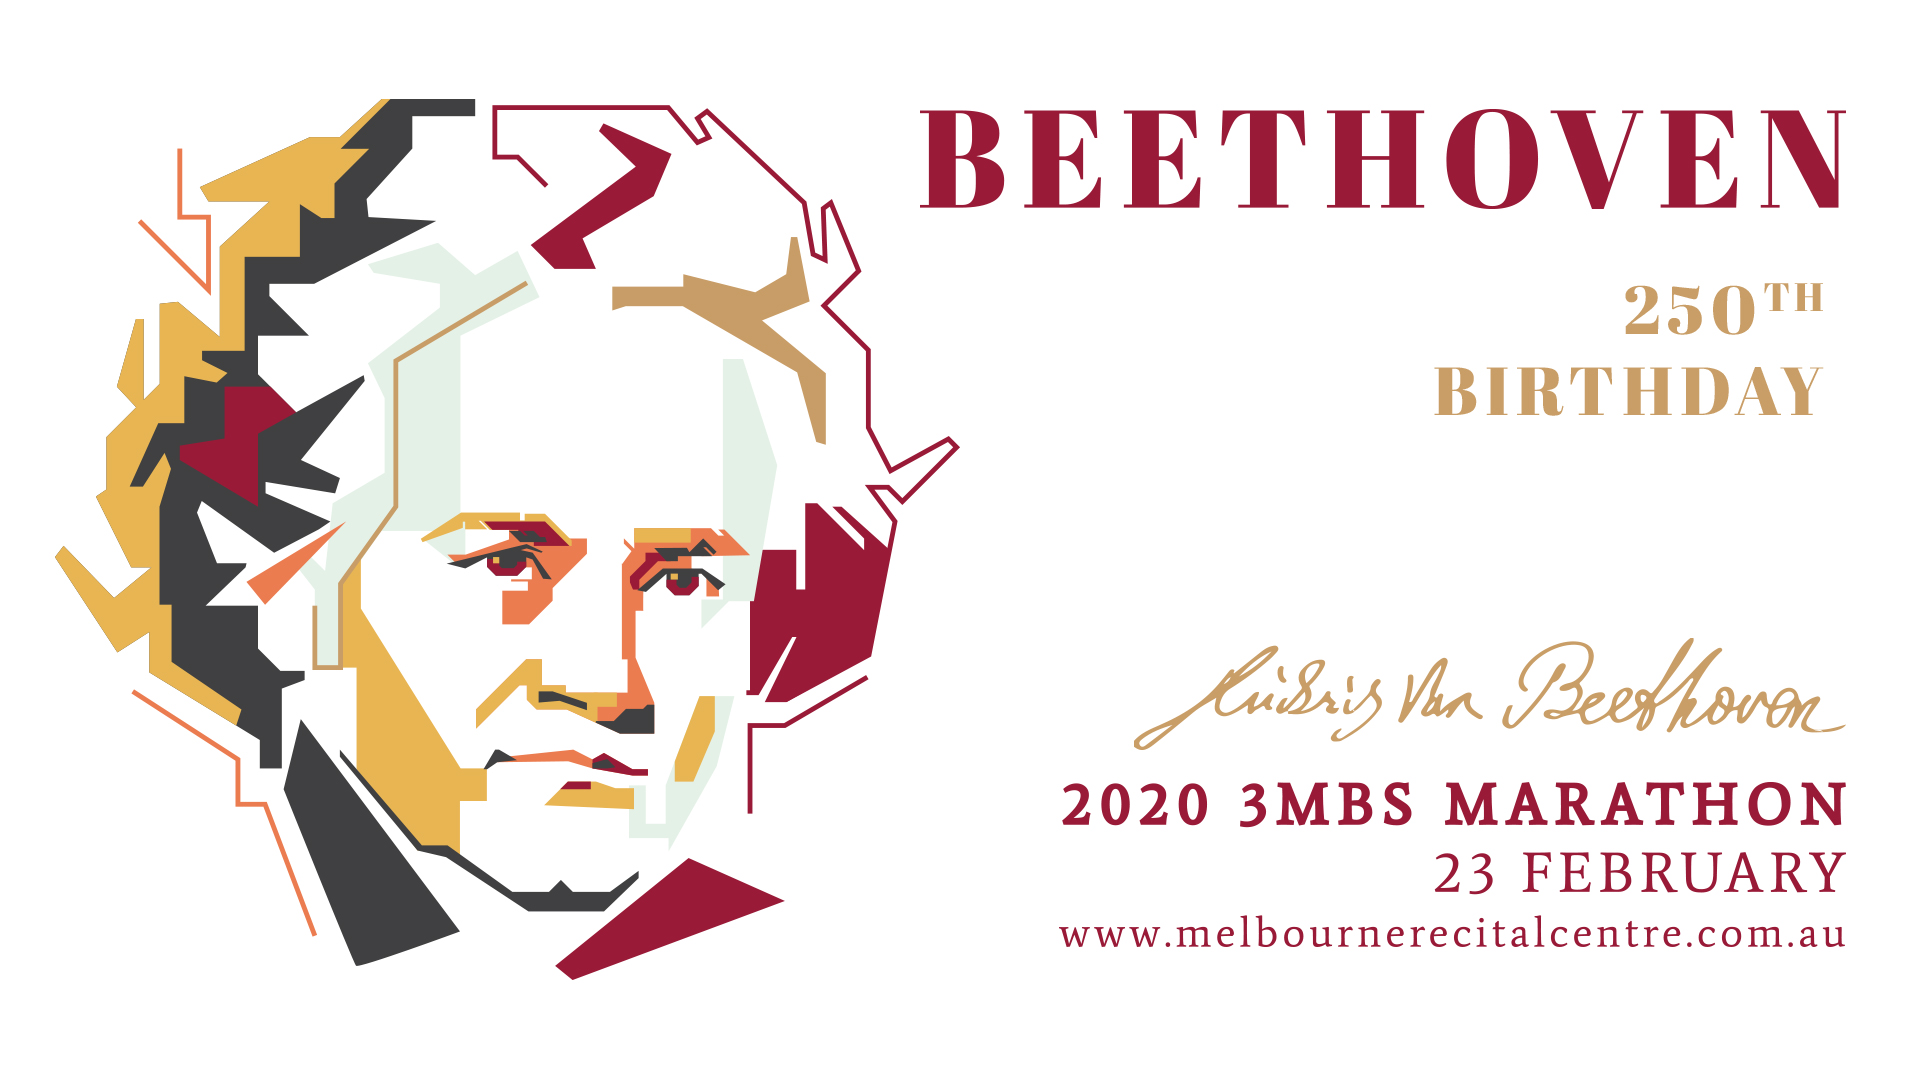 The 2020 3MBS Beethoven Marathon event image.